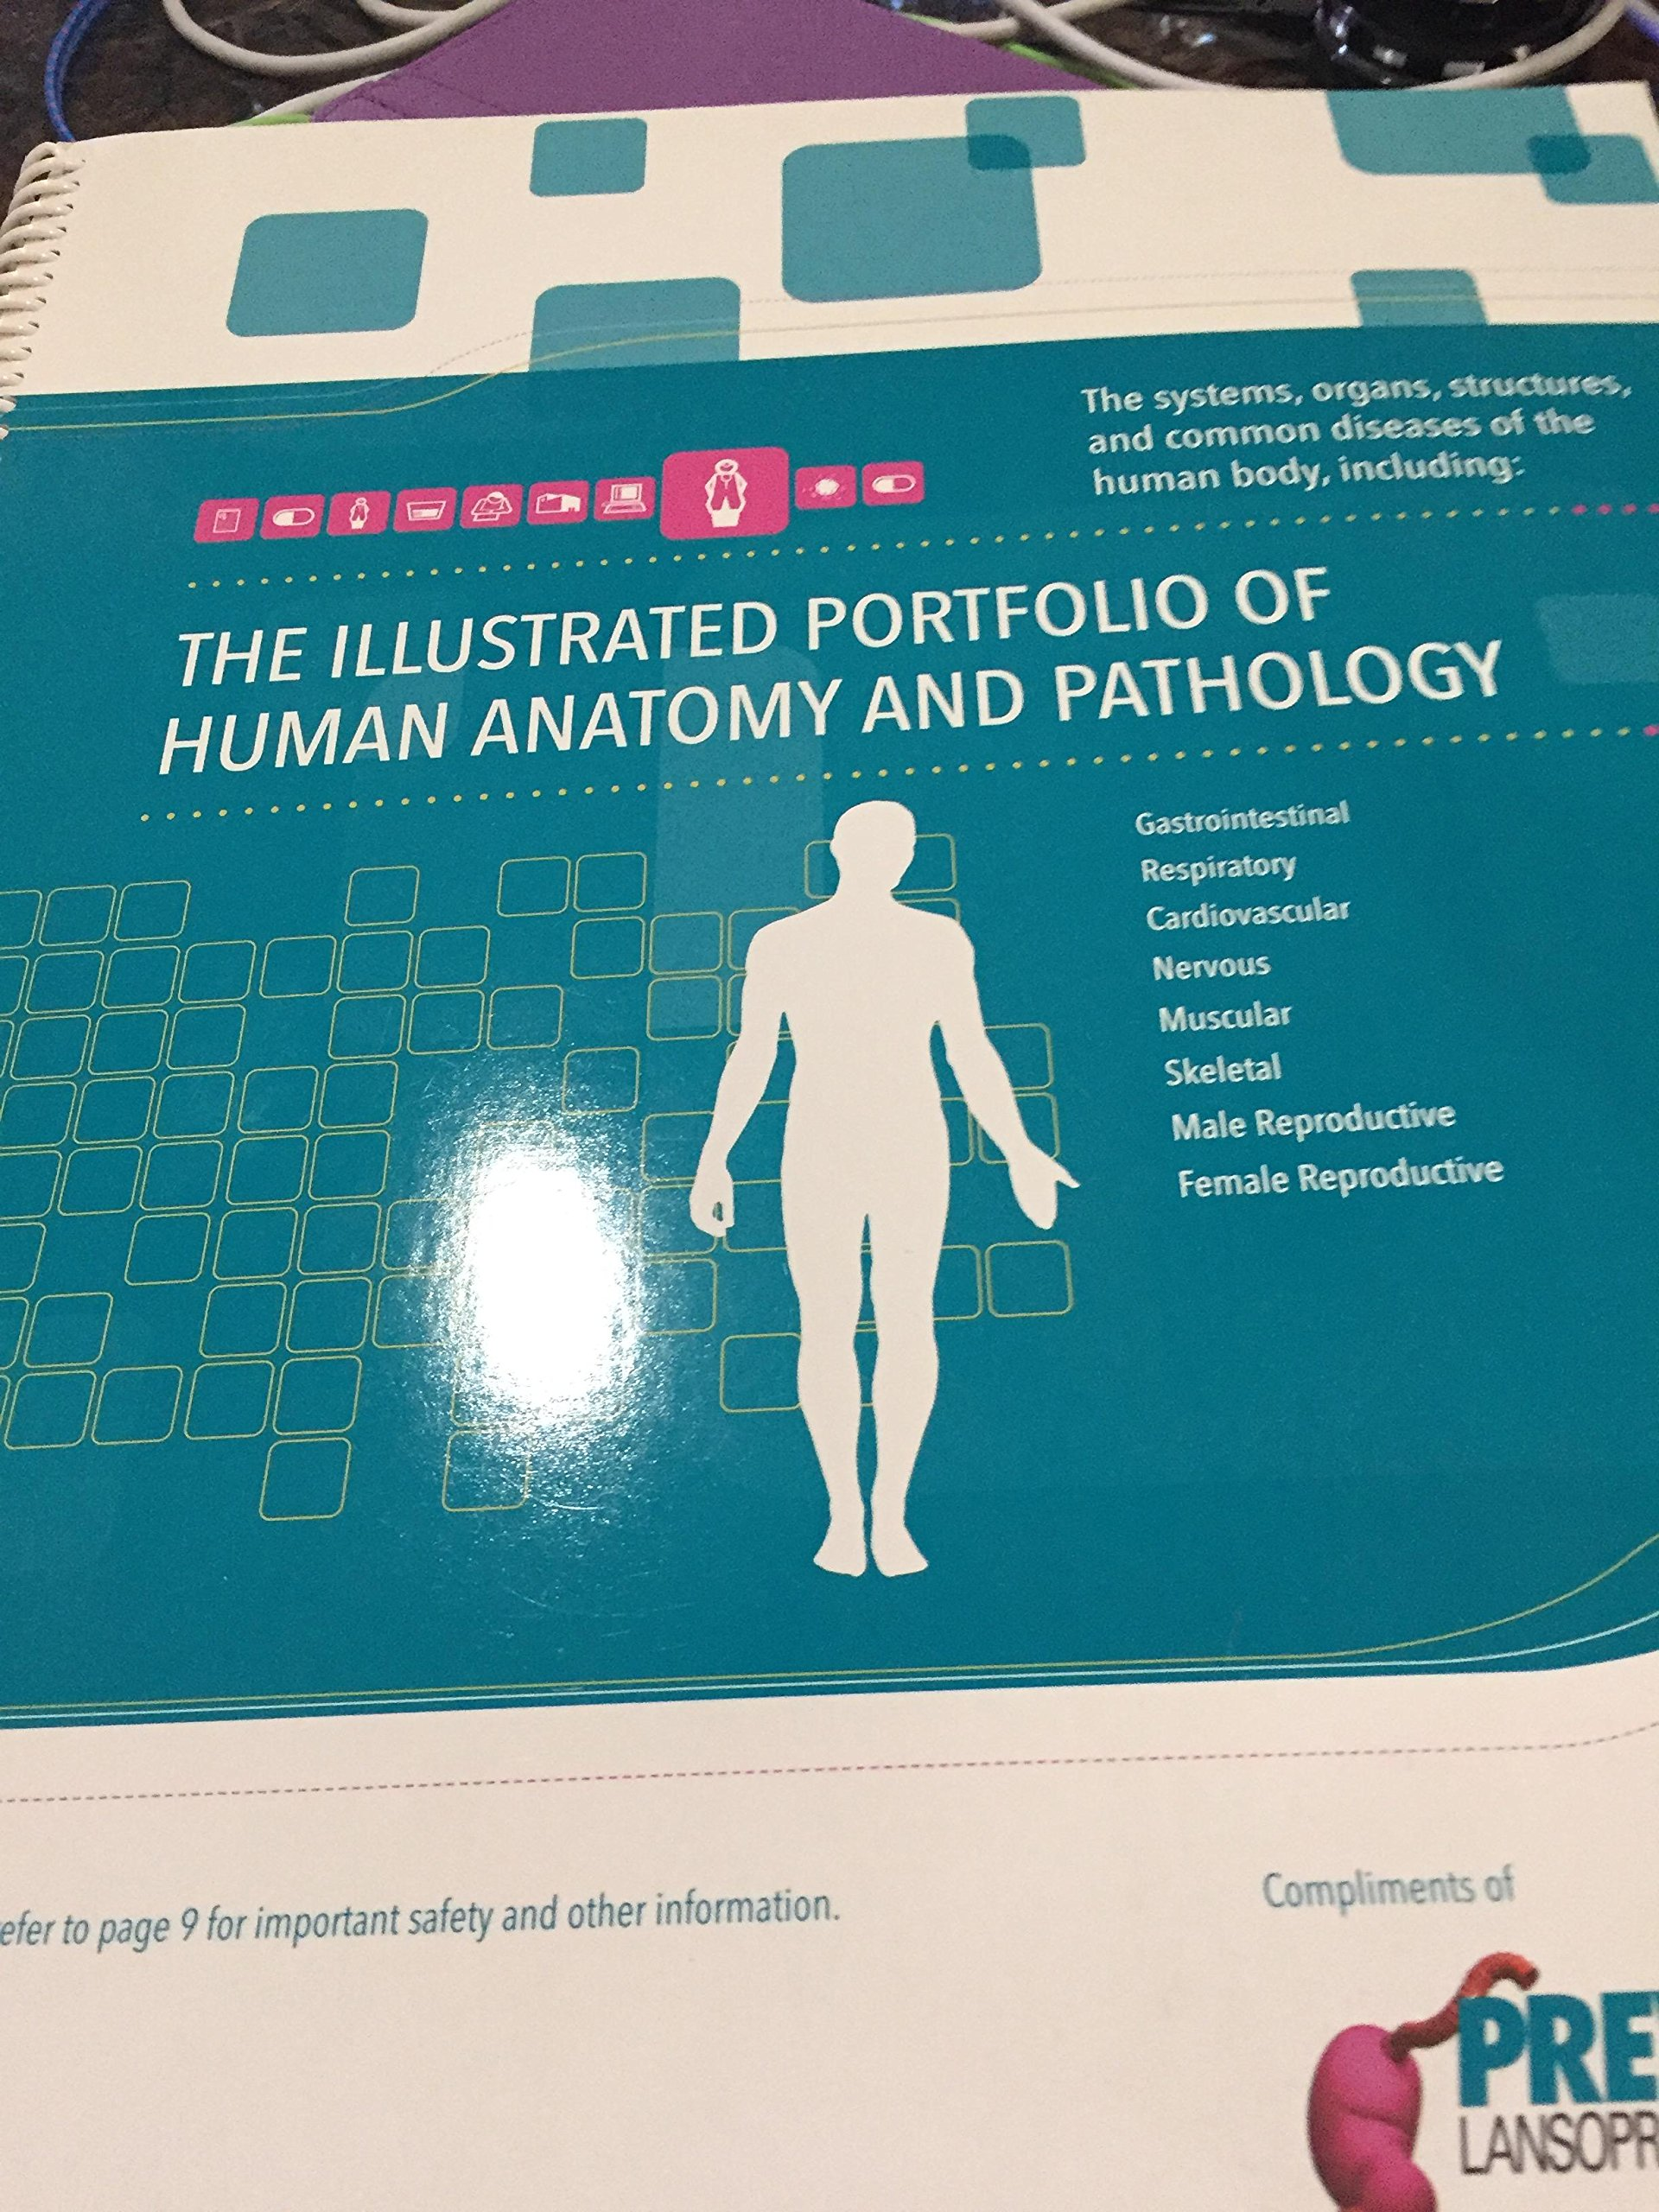 The Illustrated Portfolio Of Human Anatomy And Pathology Prevacid